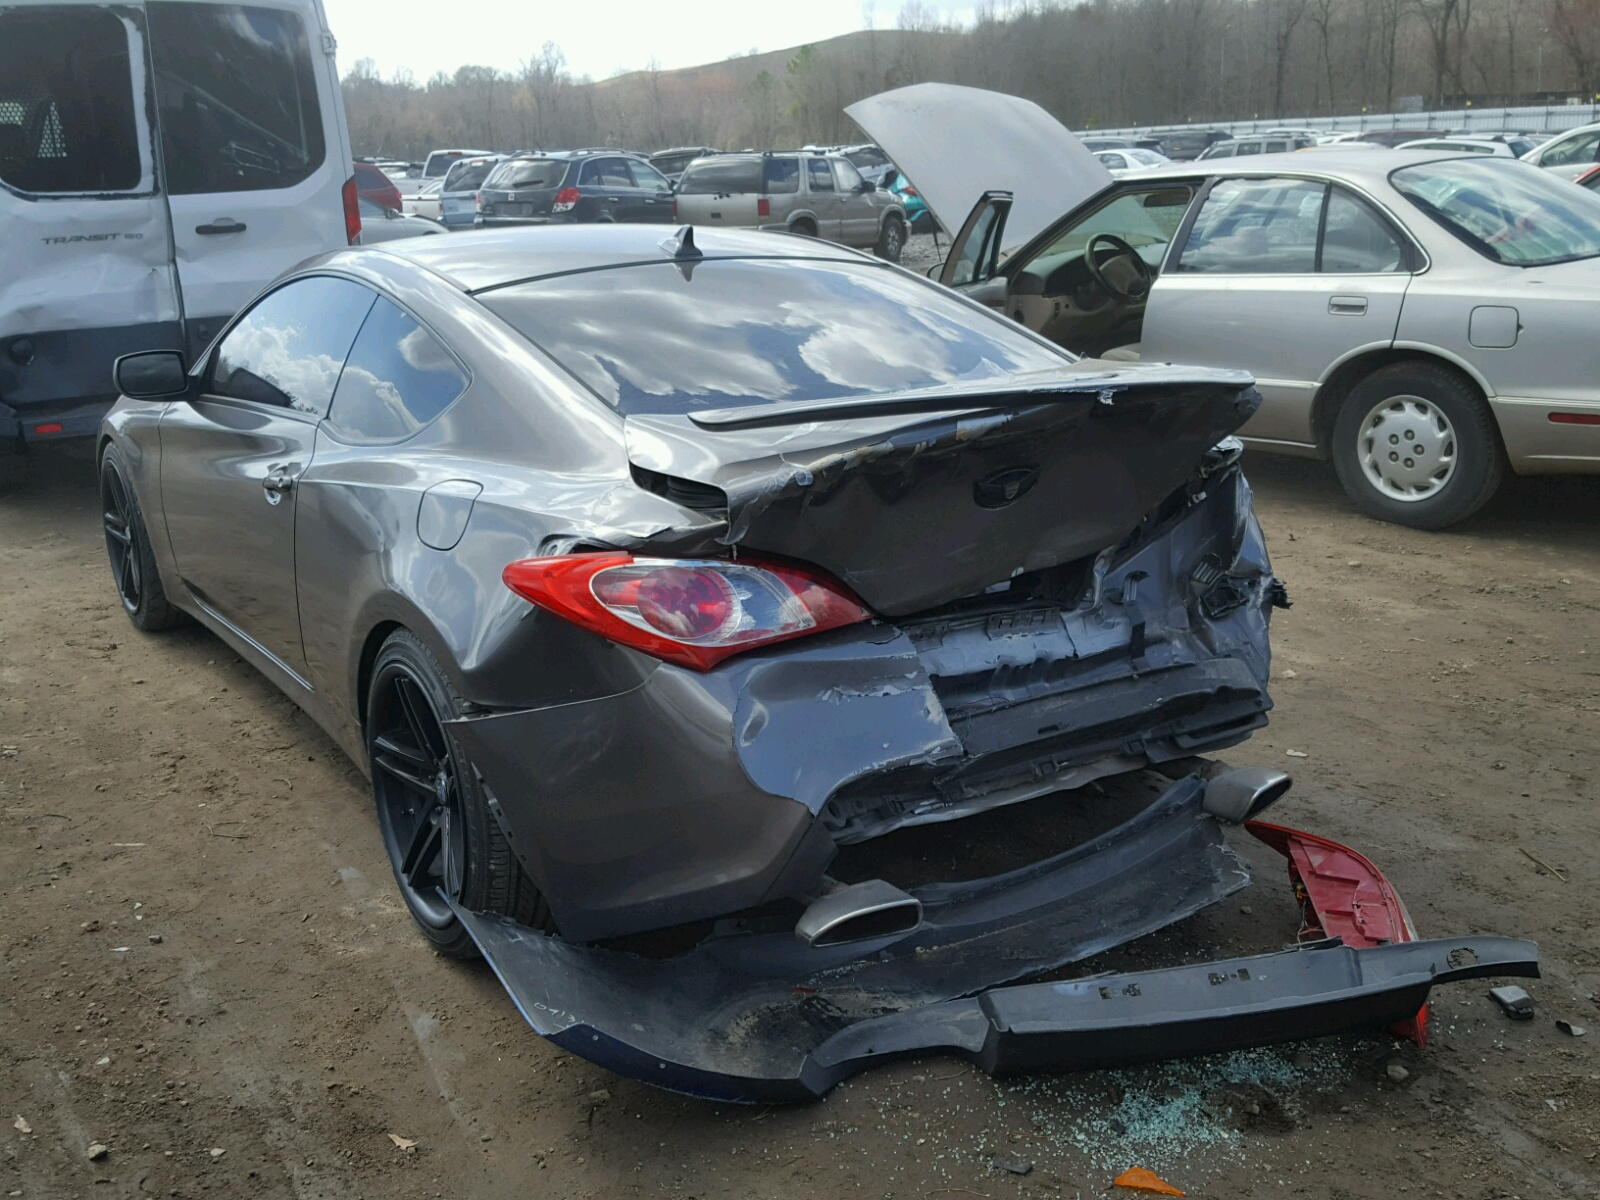 salvage g lot greer in auto online cert auctions santa fe of title red carfinder hyundai sc en copart sale on